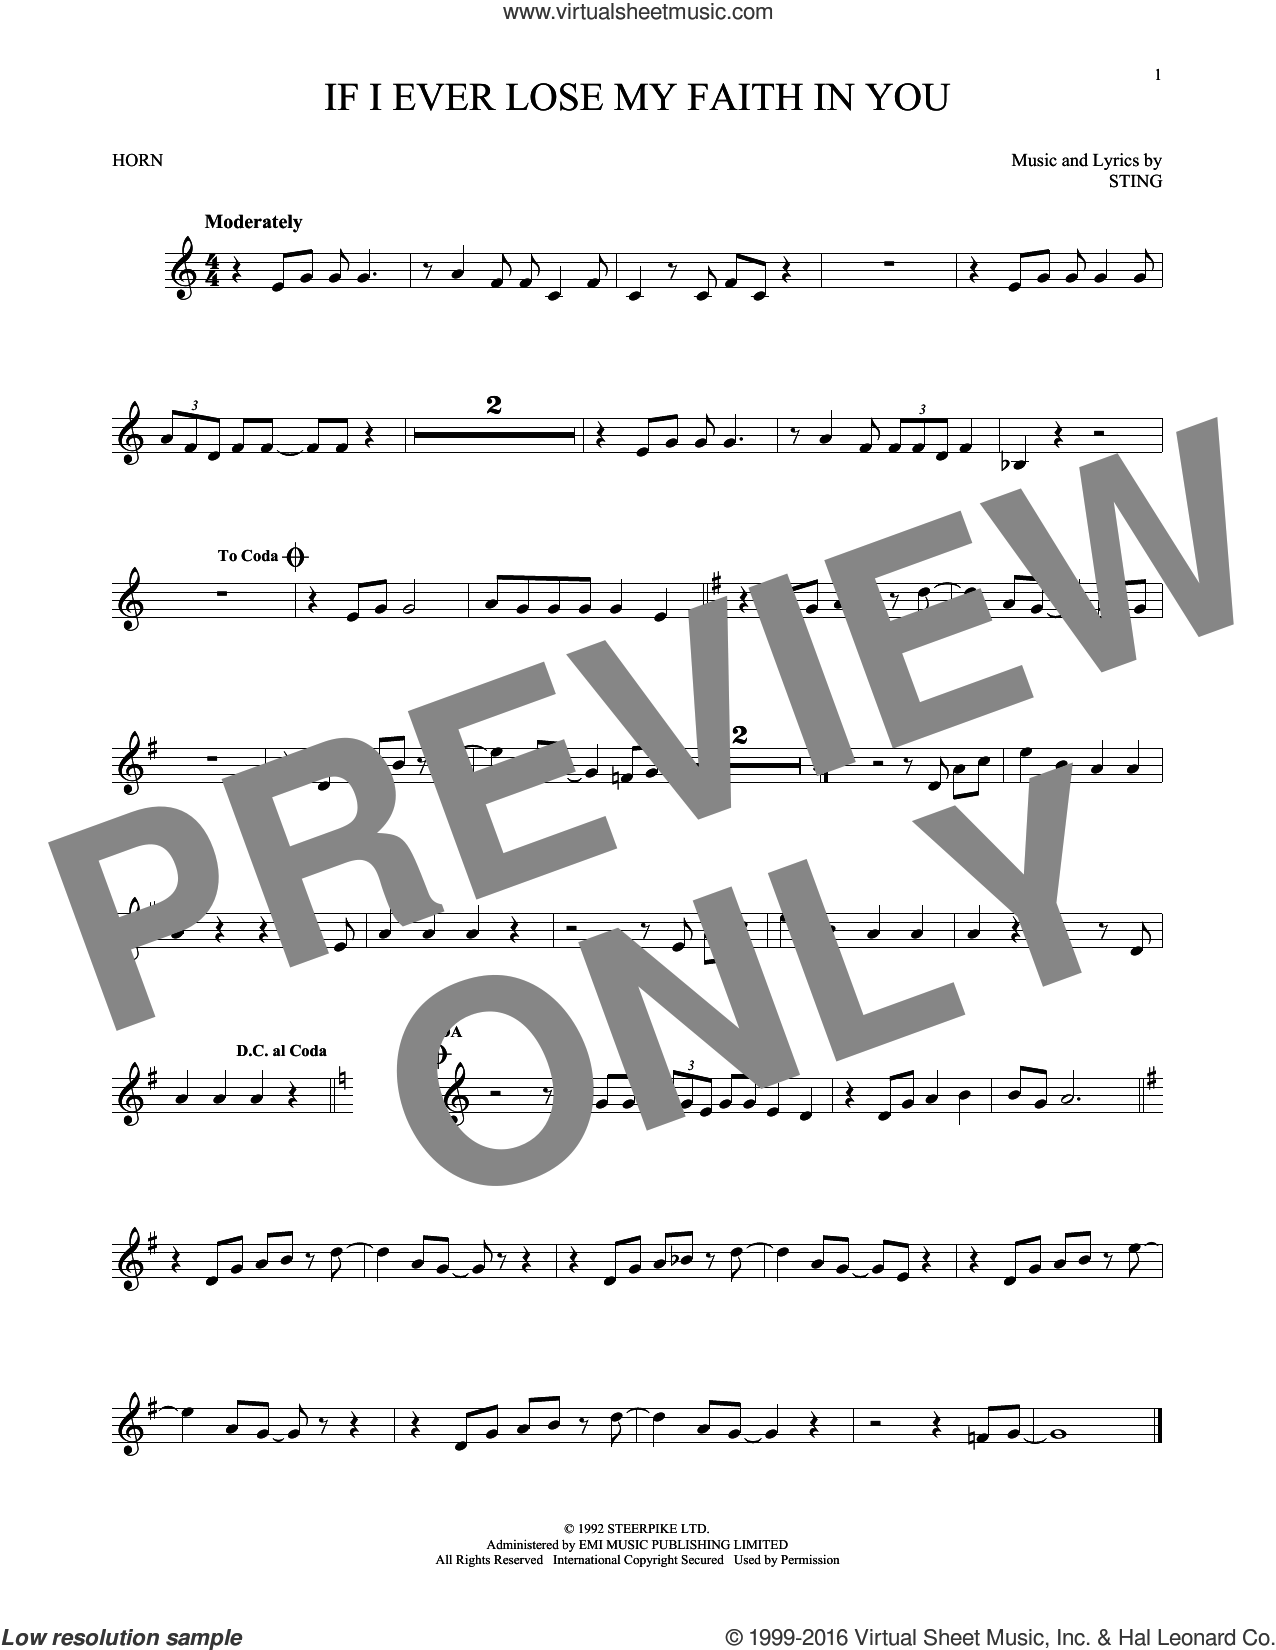 If I Ever Lose My Faith In You sheet music for horn solo by Sting, intermediate skill level